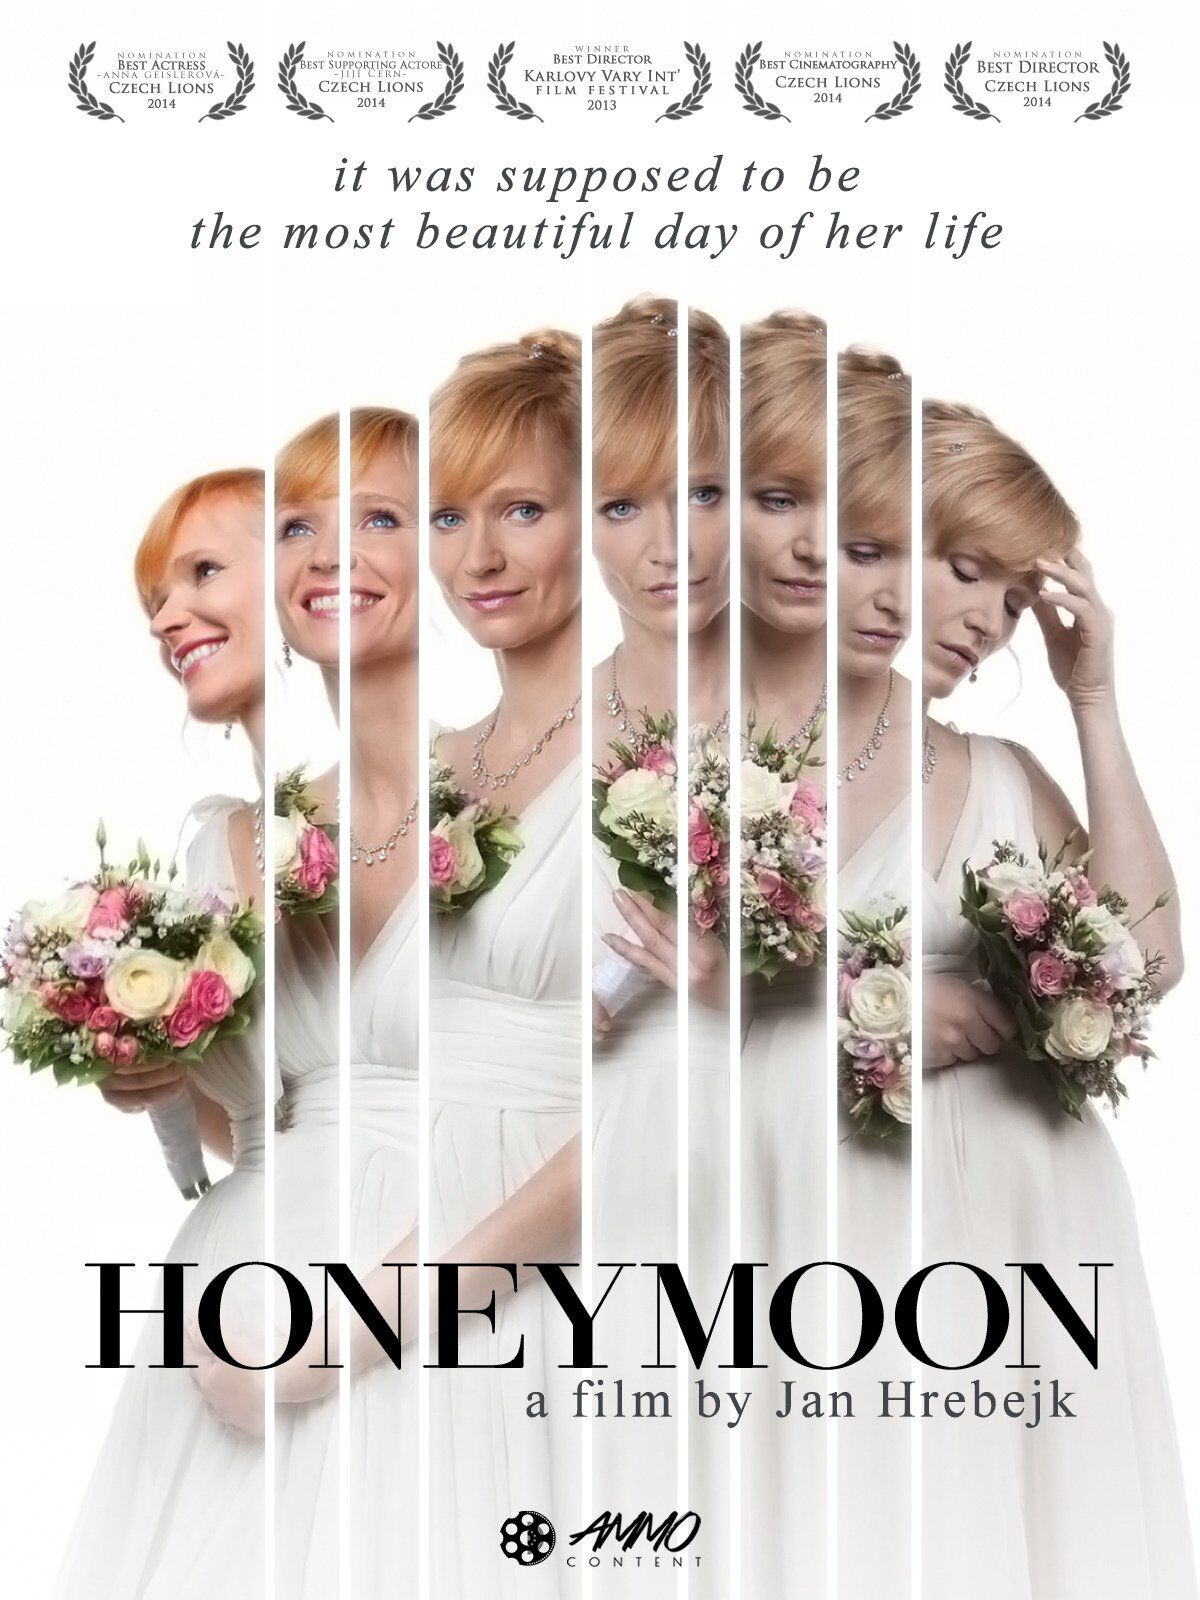 Honeymoon (2013)